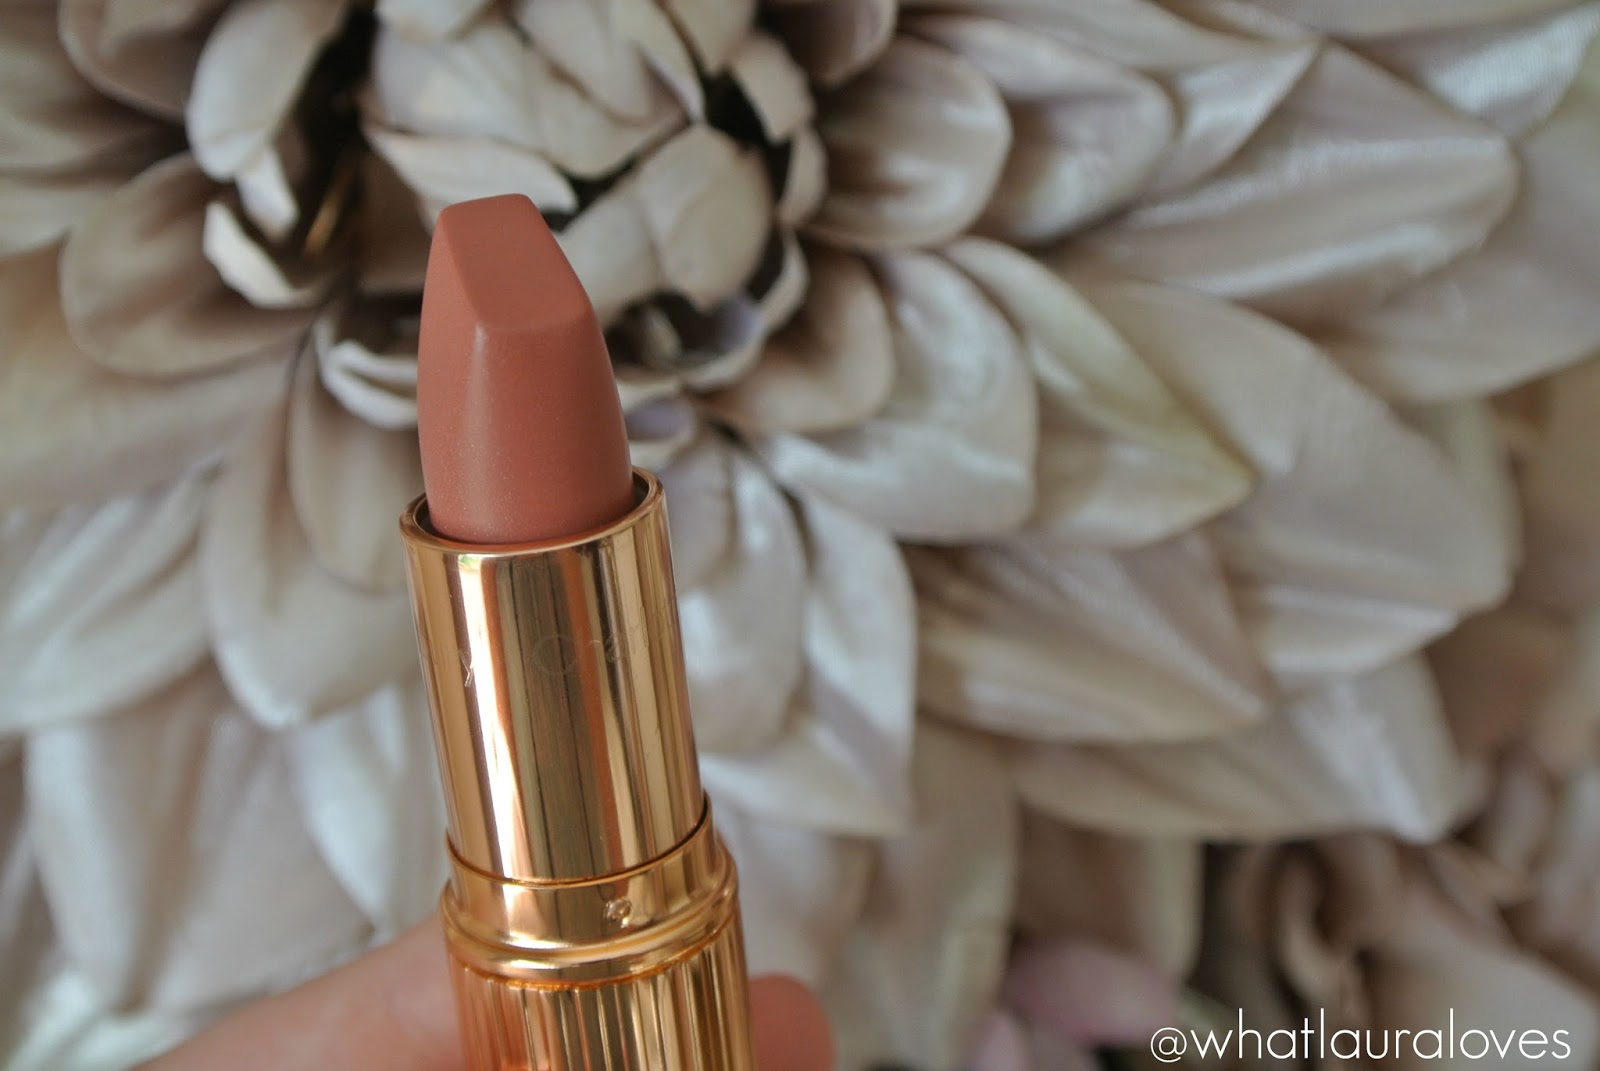 Charlotte Tilbury x Norman Parkinson Matte Revolution Lipstick in Miss Kensington Review